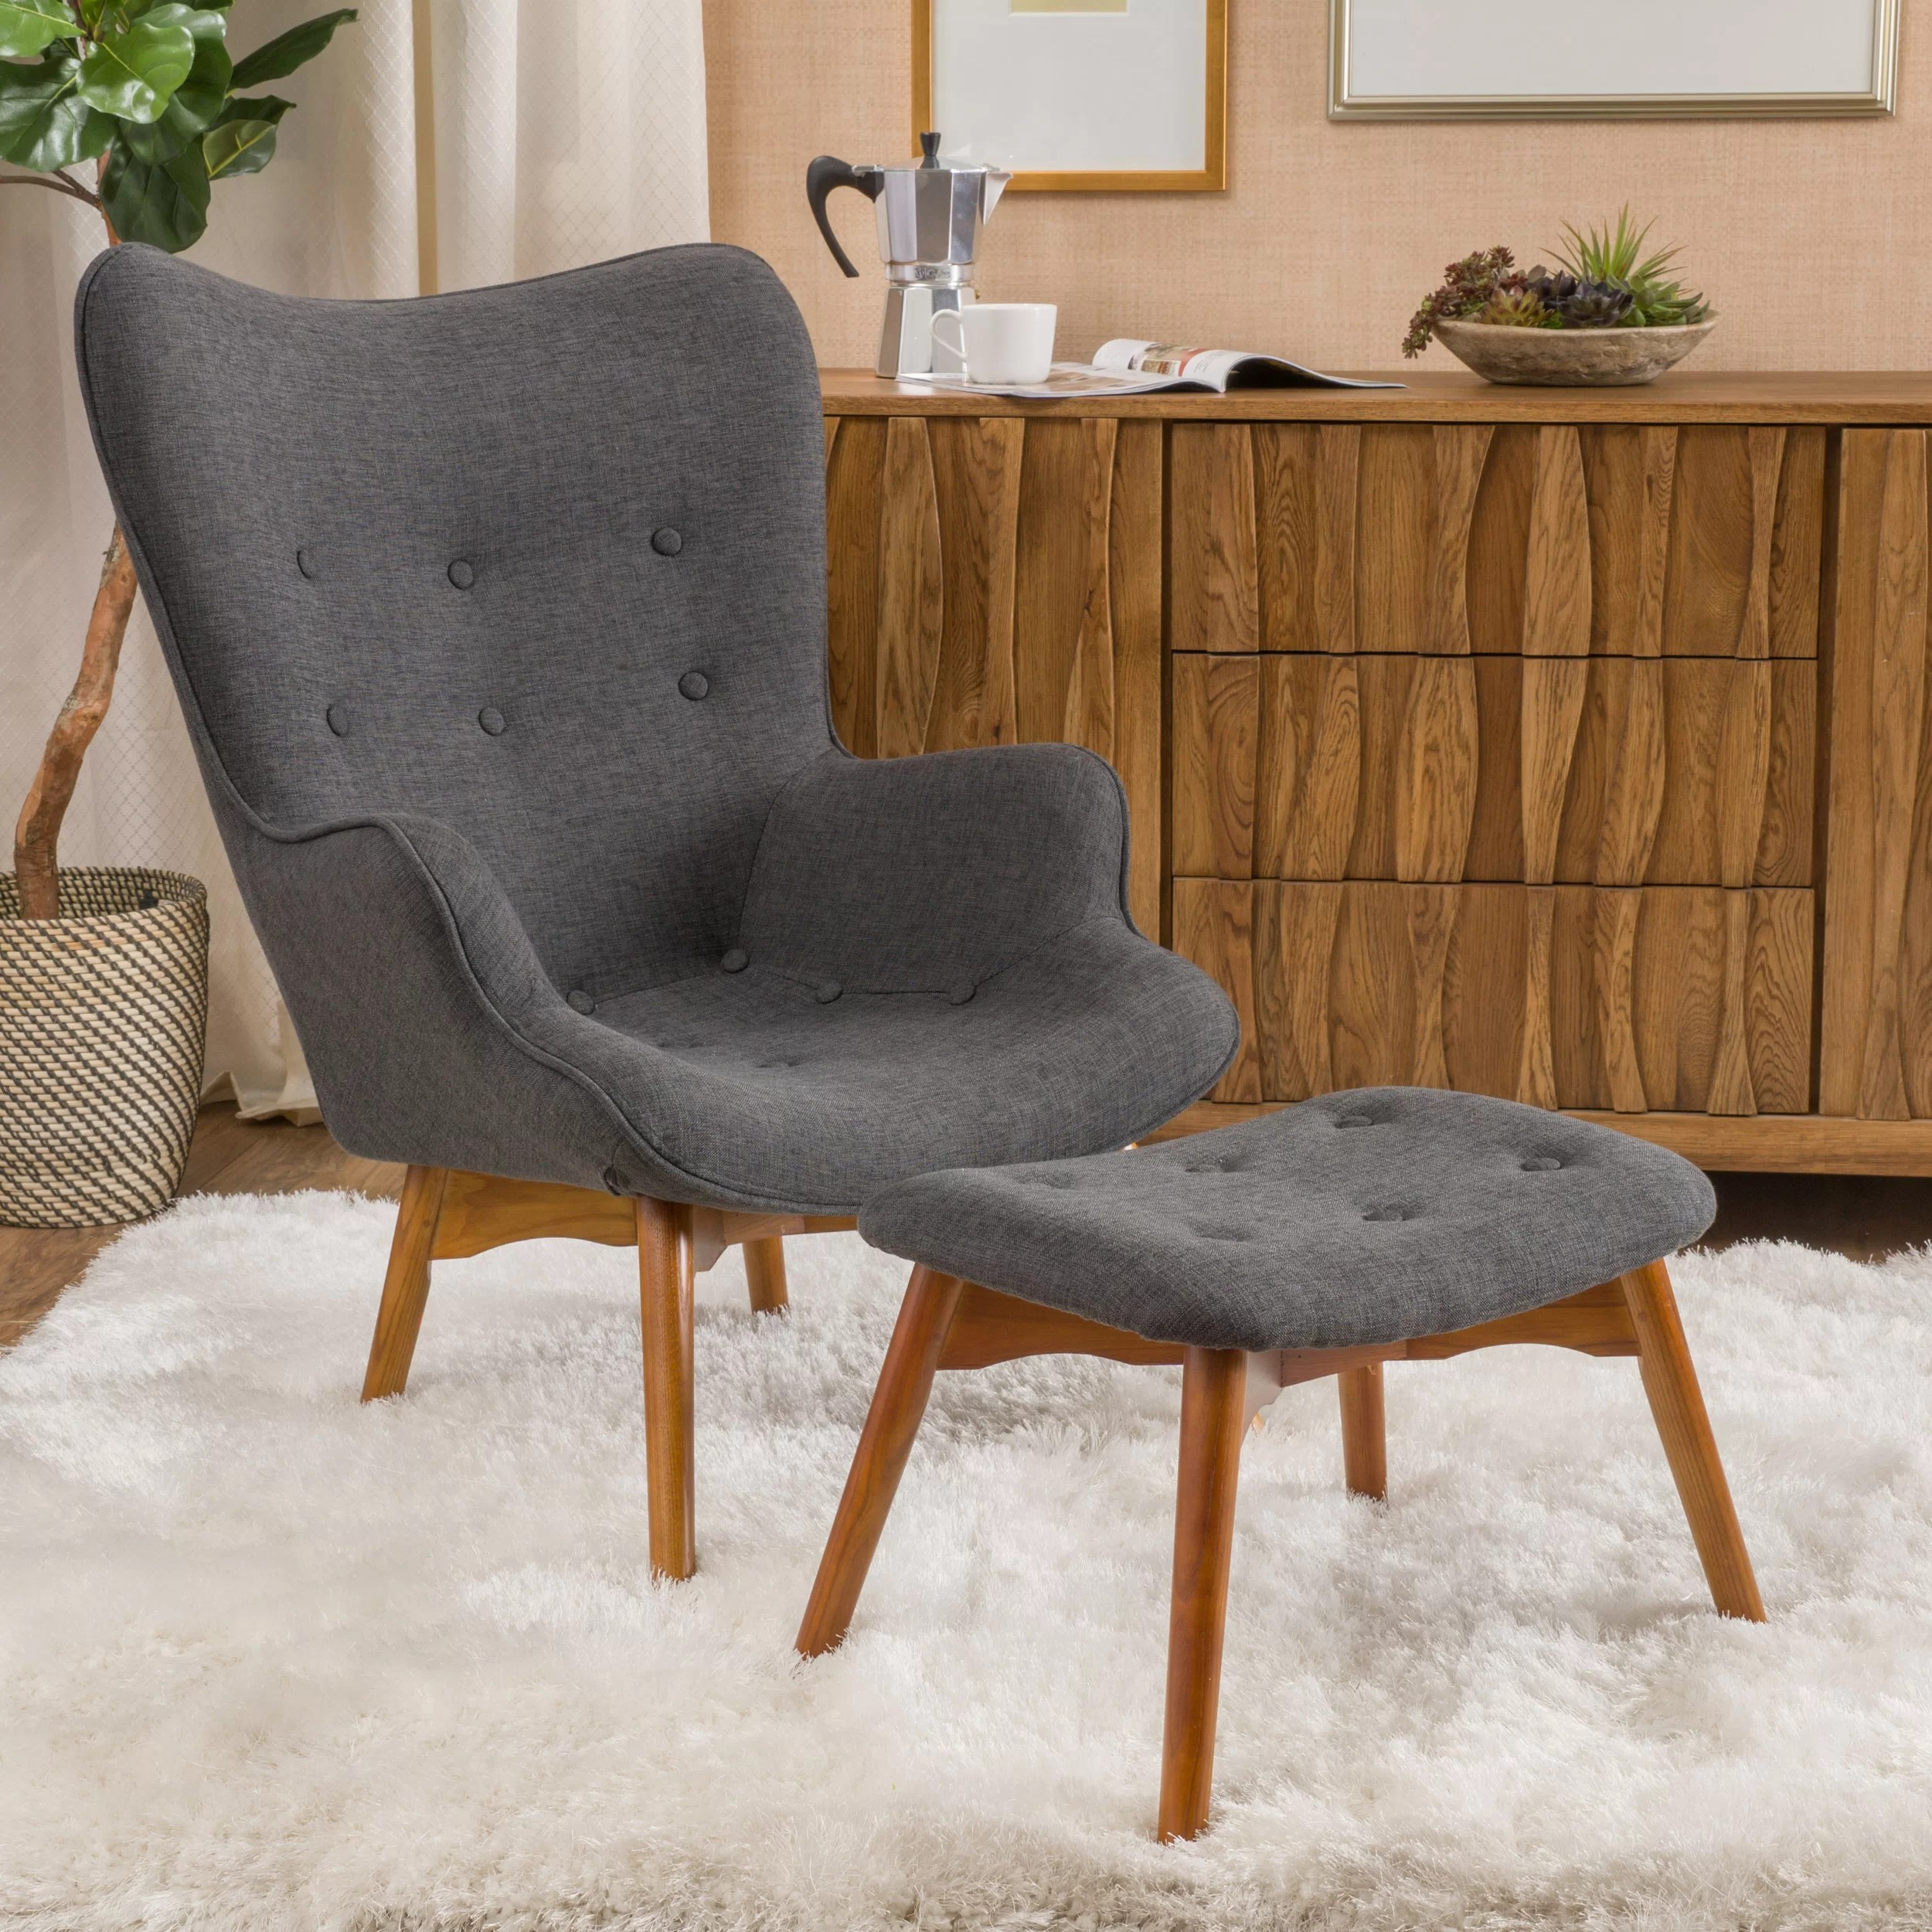 Langley Street Canyon Vista MidCentury Accent Chair Set